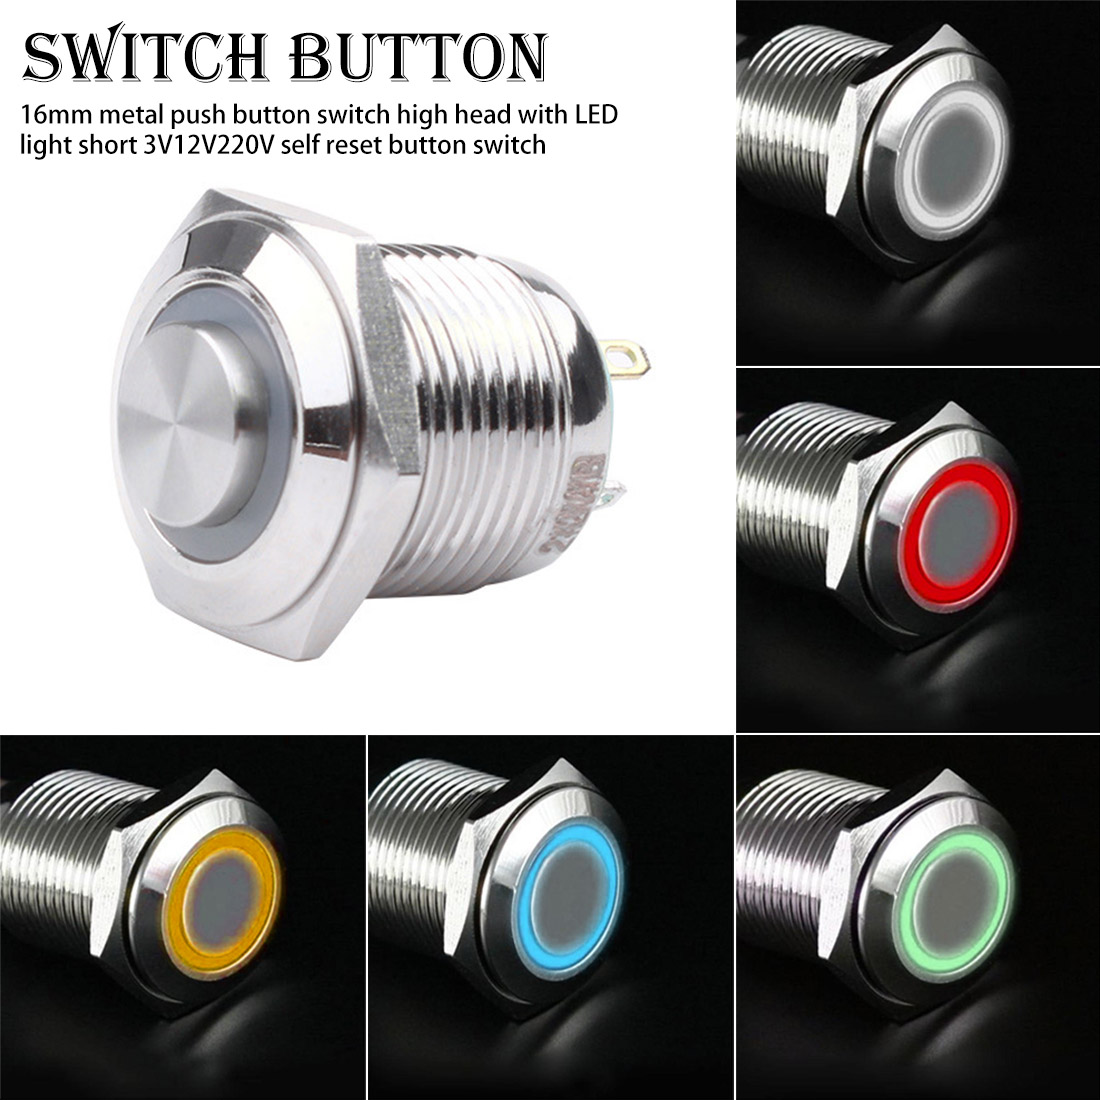 3V12V220V self reset button switch valve light switch 16mm metal push button switch high head with LED light short 3V12V220V self reset button switch valve light switch 16mm metal push button switch high head with LED light short